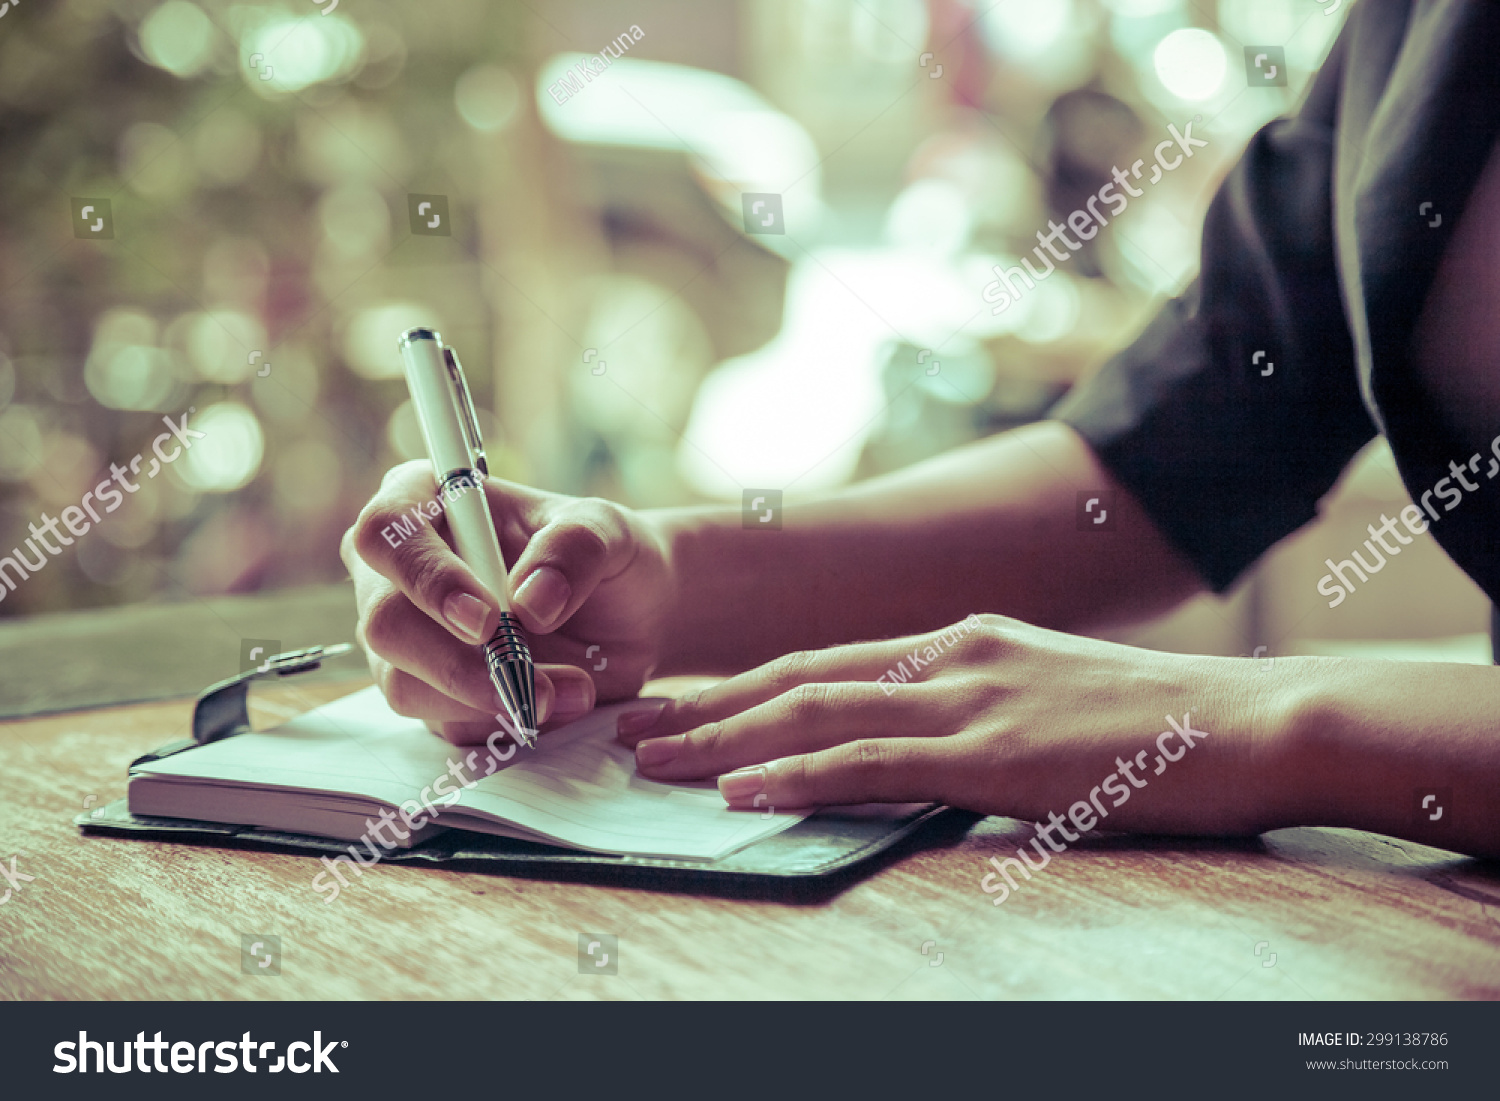 close up of woman writing her journal #299138786